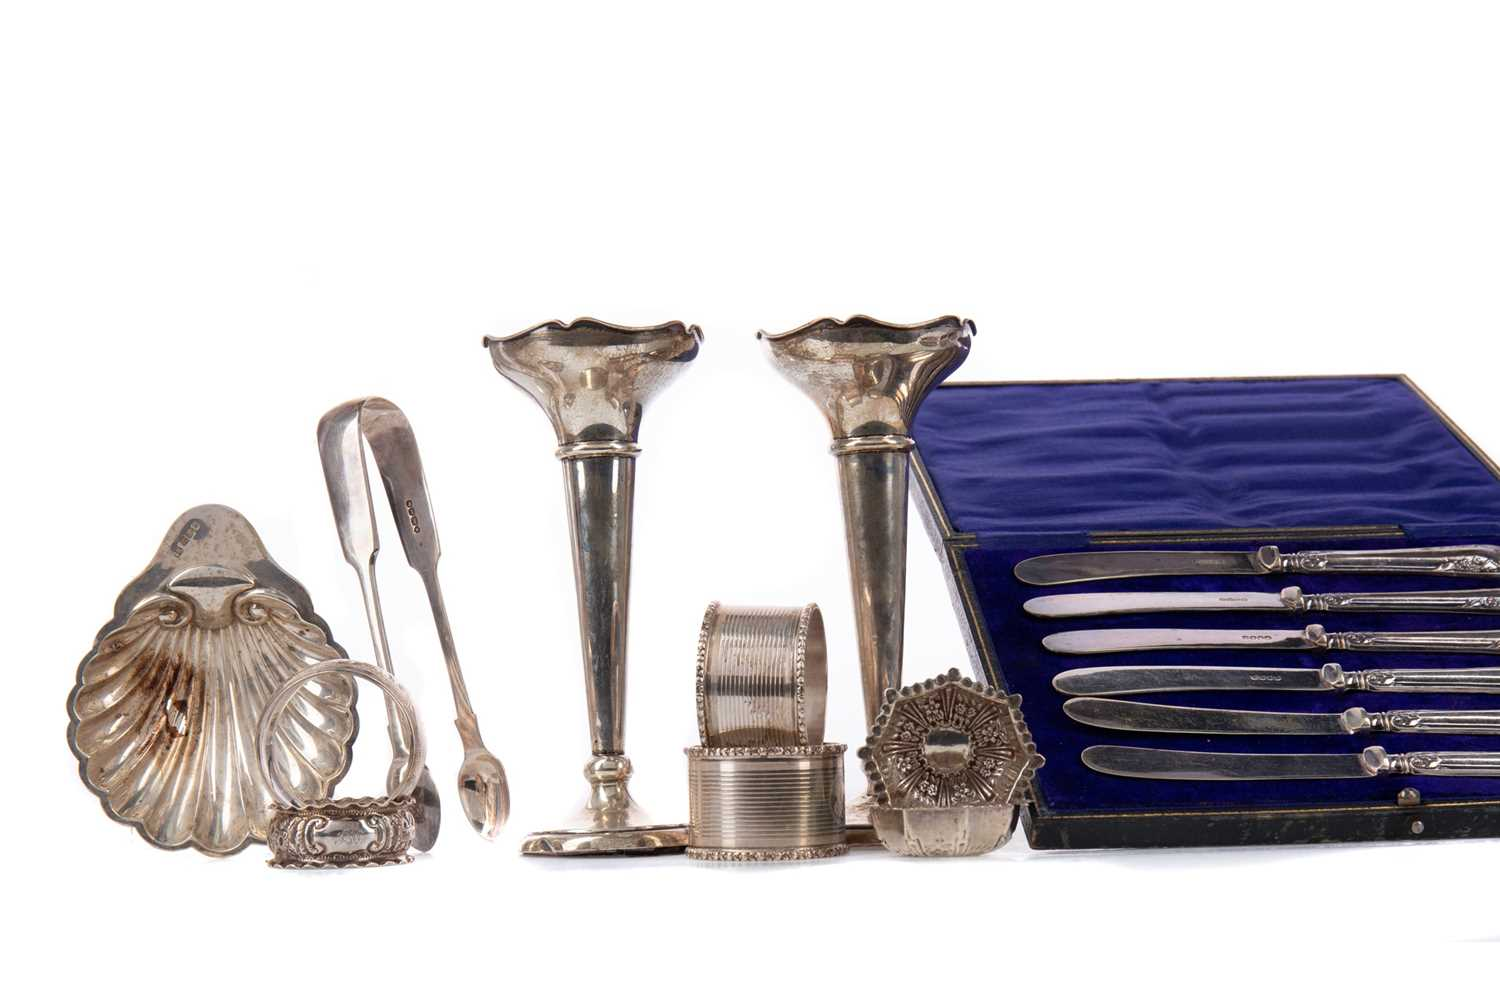 Lot 432 - A PAIR OF GEORGE V SILVER SOLIFLEUR VASES ALONG WITH OTHER SILVER WARE